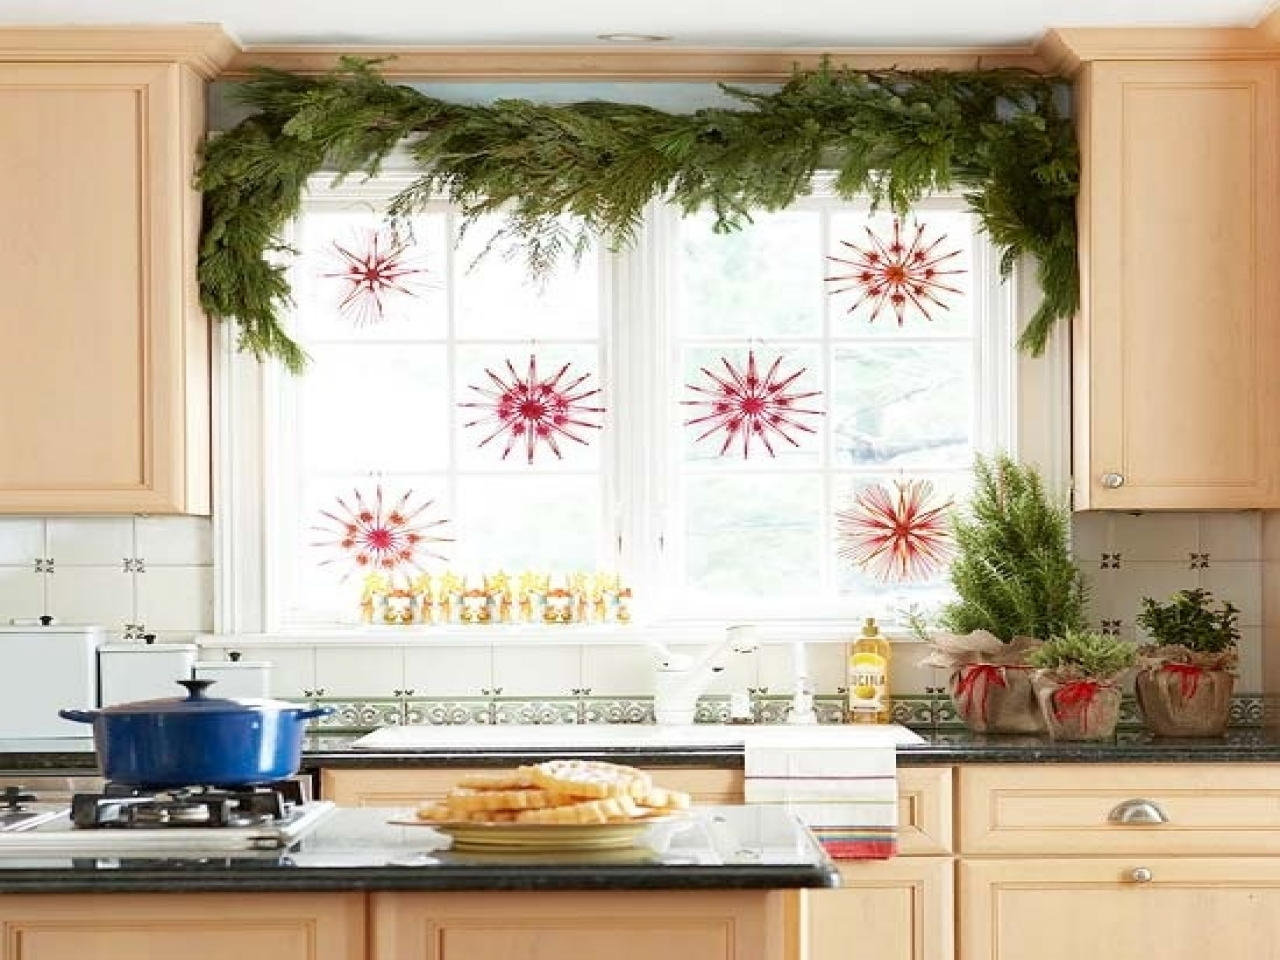 Christmas kitchen window in Kitchen Christmas Decoration Ideas | LovelySpaces.com